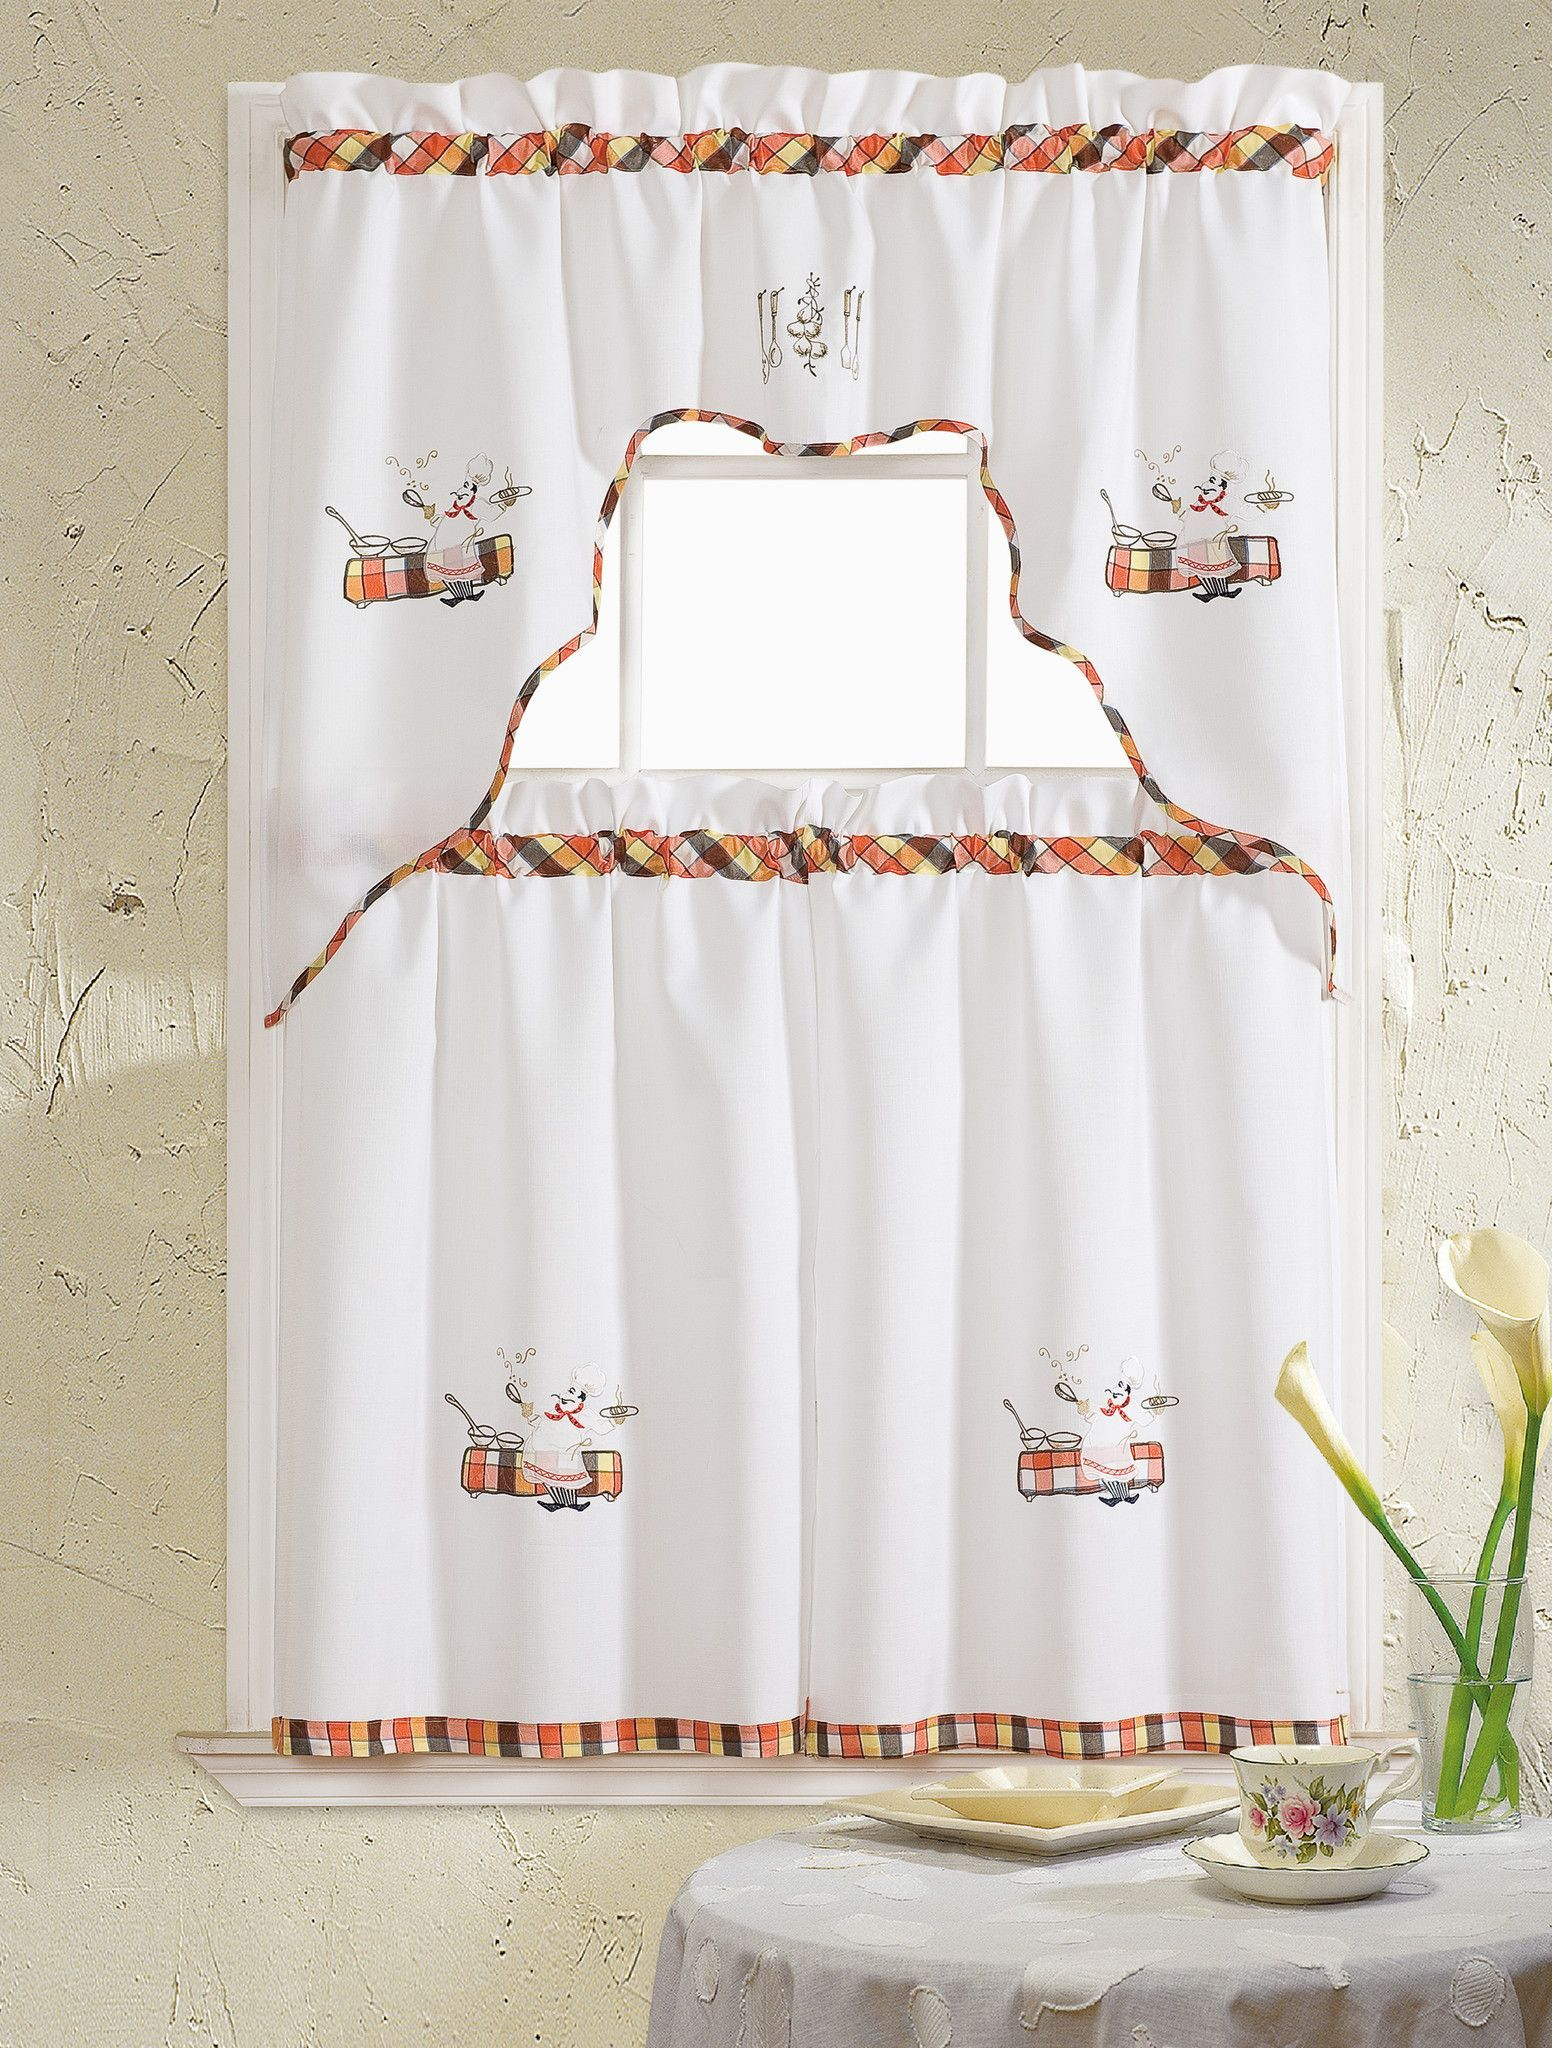 Grand chef embroidered ruffle kitchen curtain set valance x